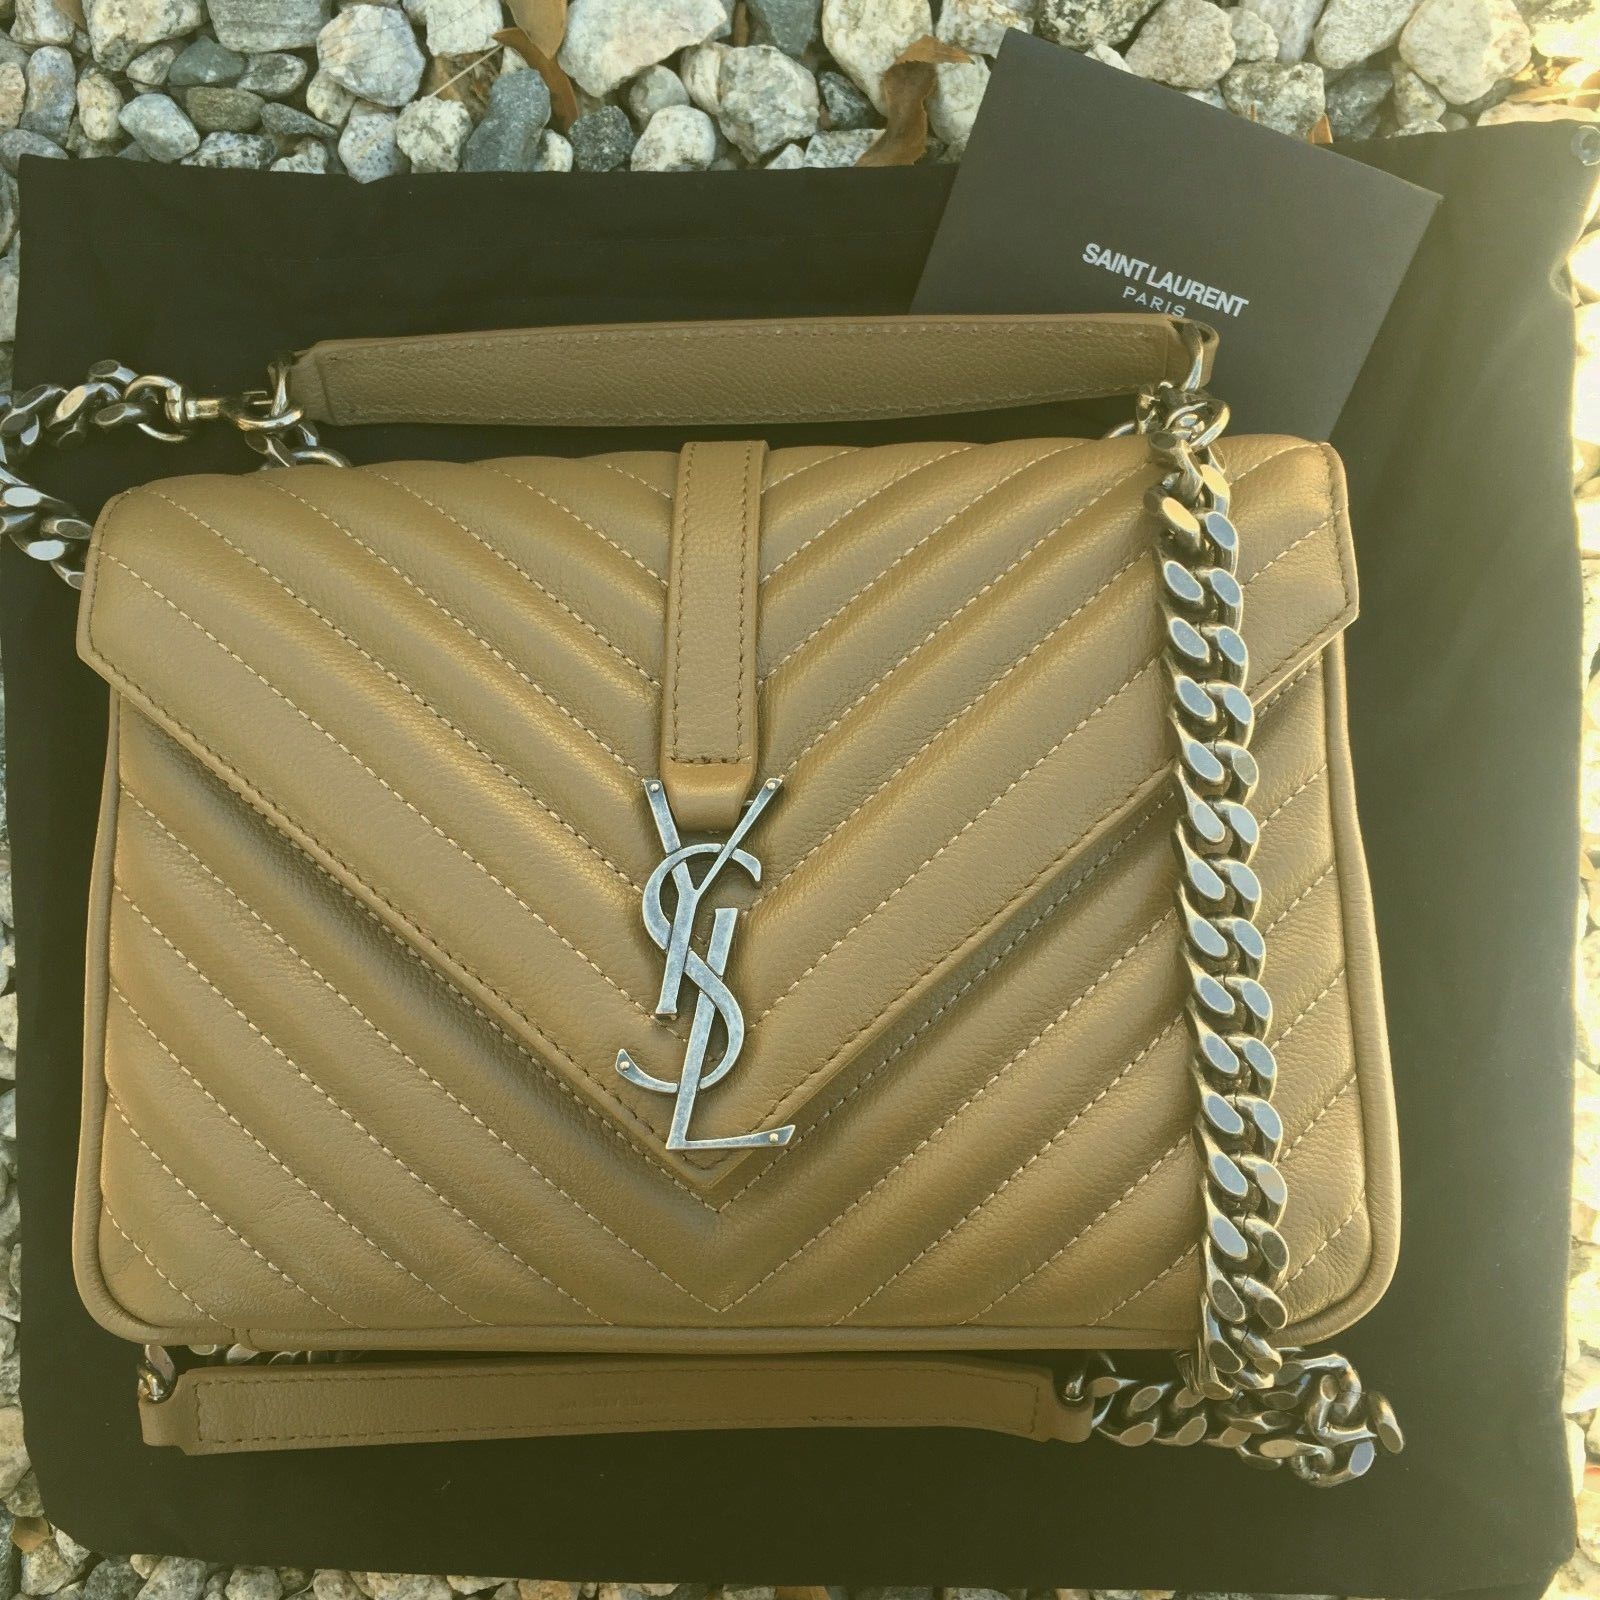 943c9cc26b YSL YVES SAINT LAURENT MEDIUM MONOGRAM COLLEGE SHOULDER BAG BEIGE ...